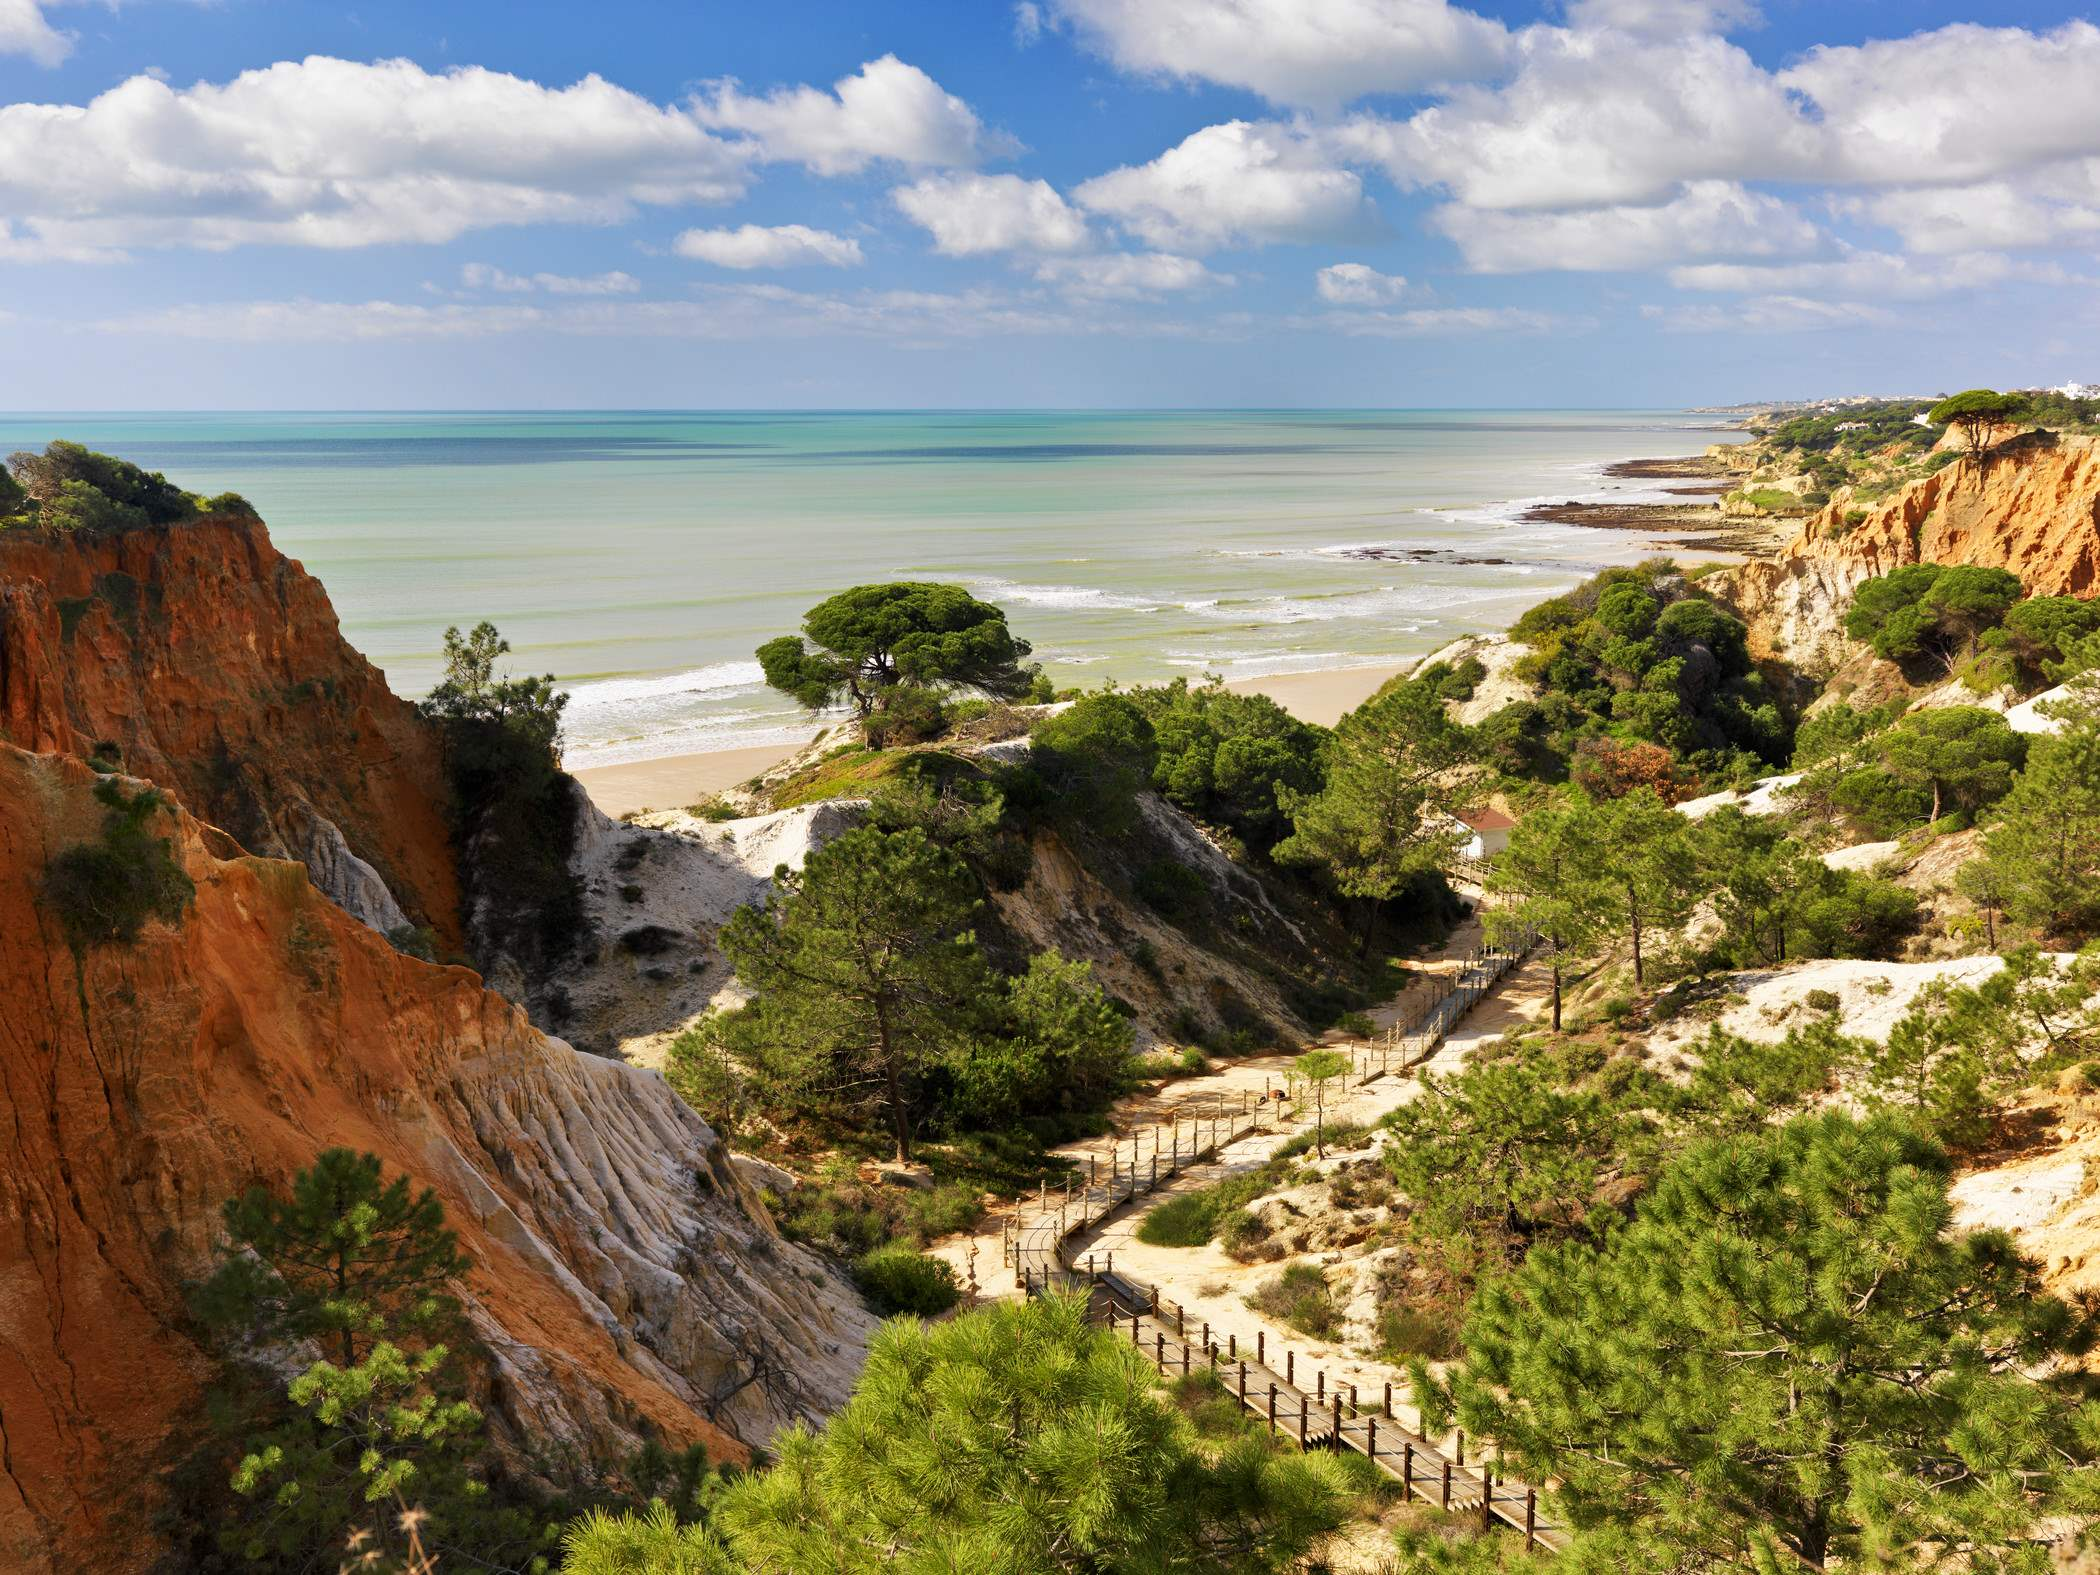 Pine Cliffs Terraces, 4 Bedroom, room only basis, 4 bedroom villa in Pine Cliffs Resort, Algarve Photo #45